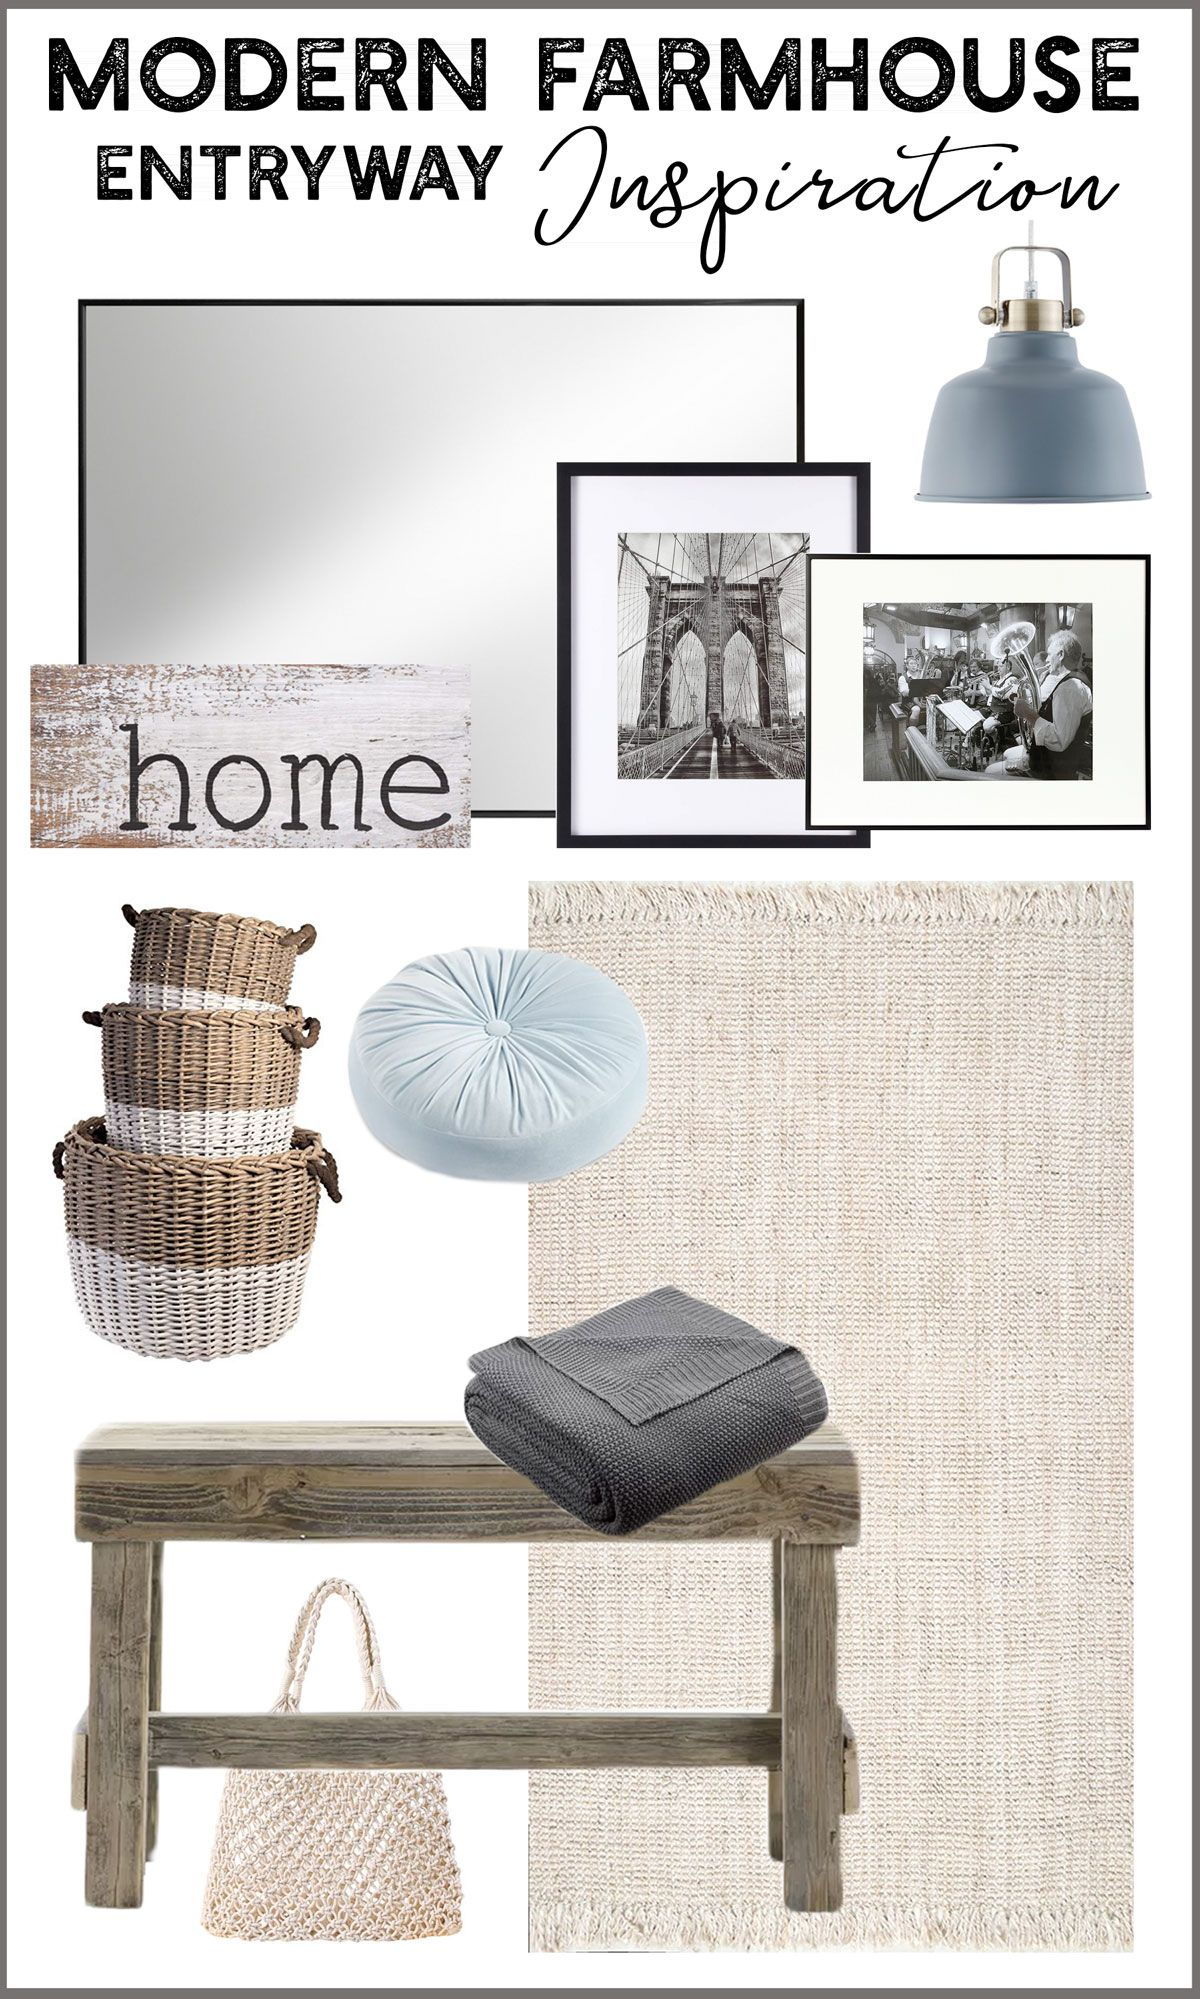 See the space we've created this design mood board for - a Traditional Modern Farmhouse entryway / foyer. #modernfarmhouse #traditionalfarmhouse #frenchfarmhouse #frenchstyle #entryway #foyer #moodboard #designelements #camitidbits #interiordesigner